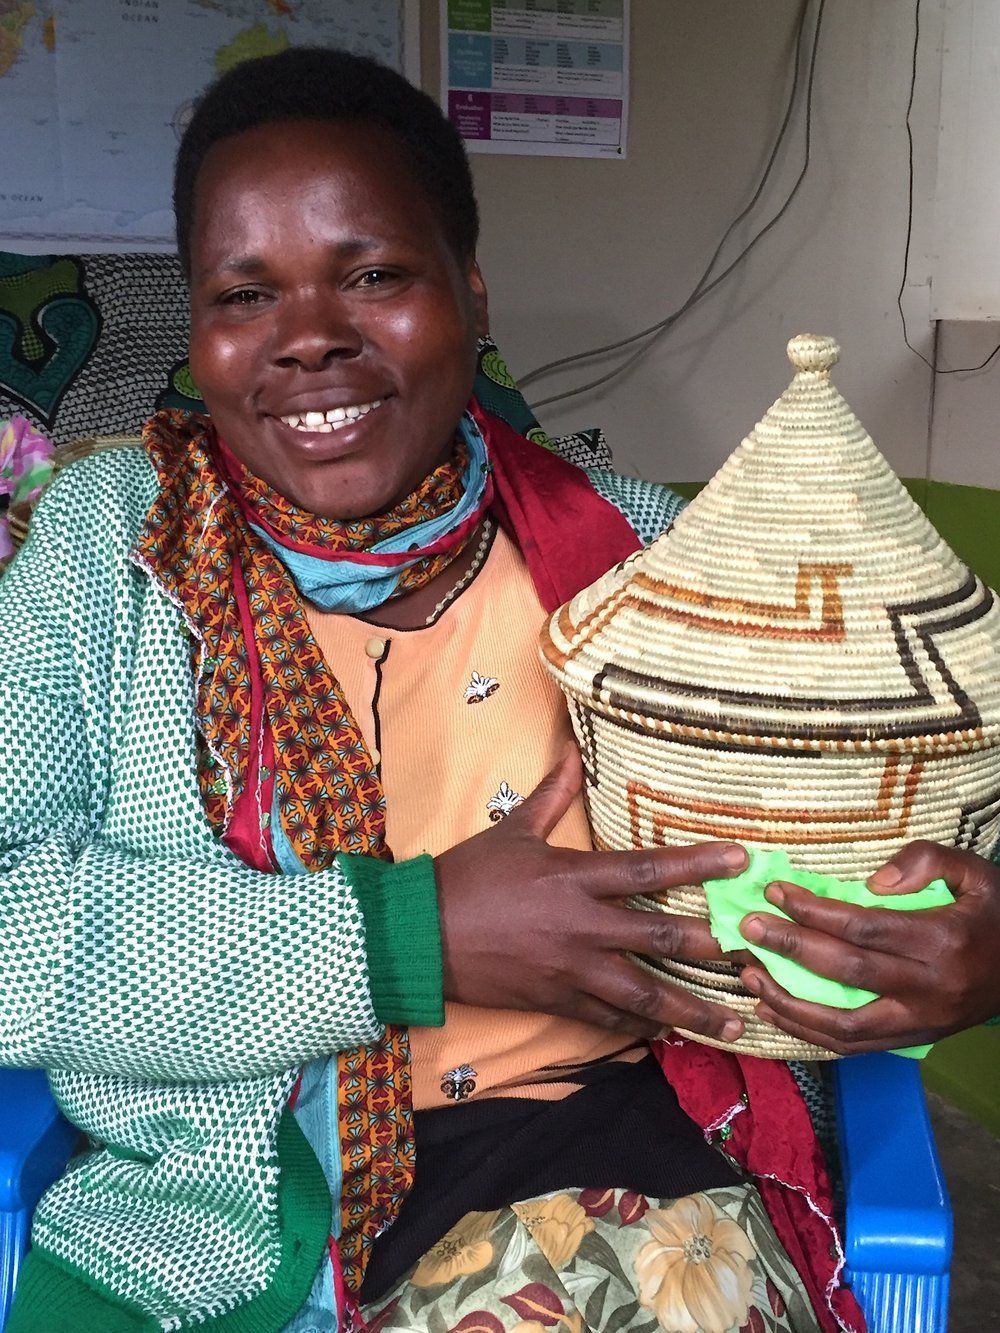 Lovinah, ACT Weaver Quality Manager, is holding one of her own exquisite baskets.